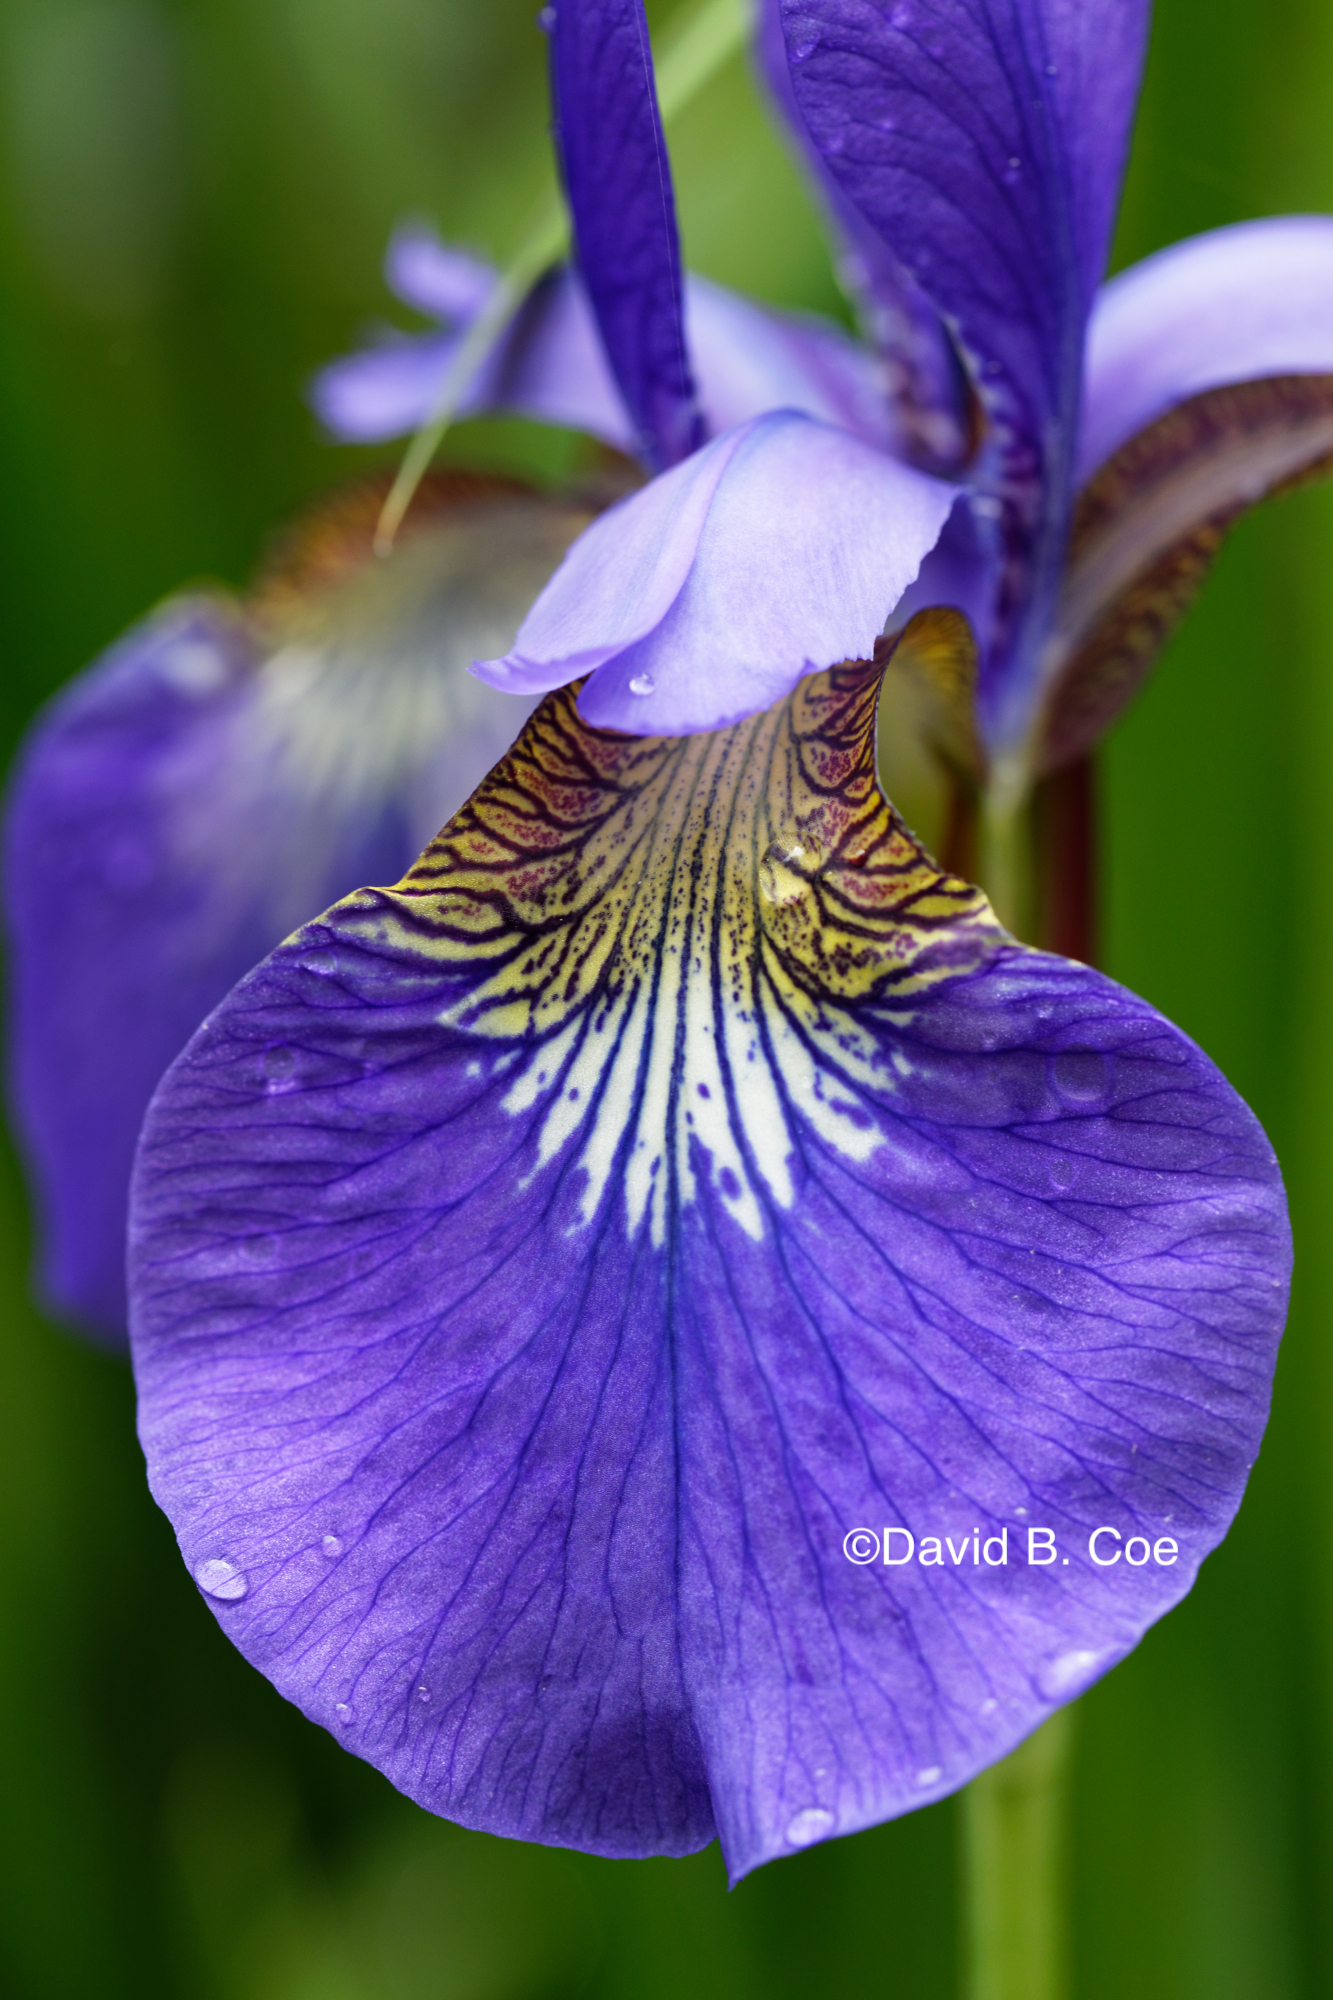 Japanese Iris I, by David B. Coe